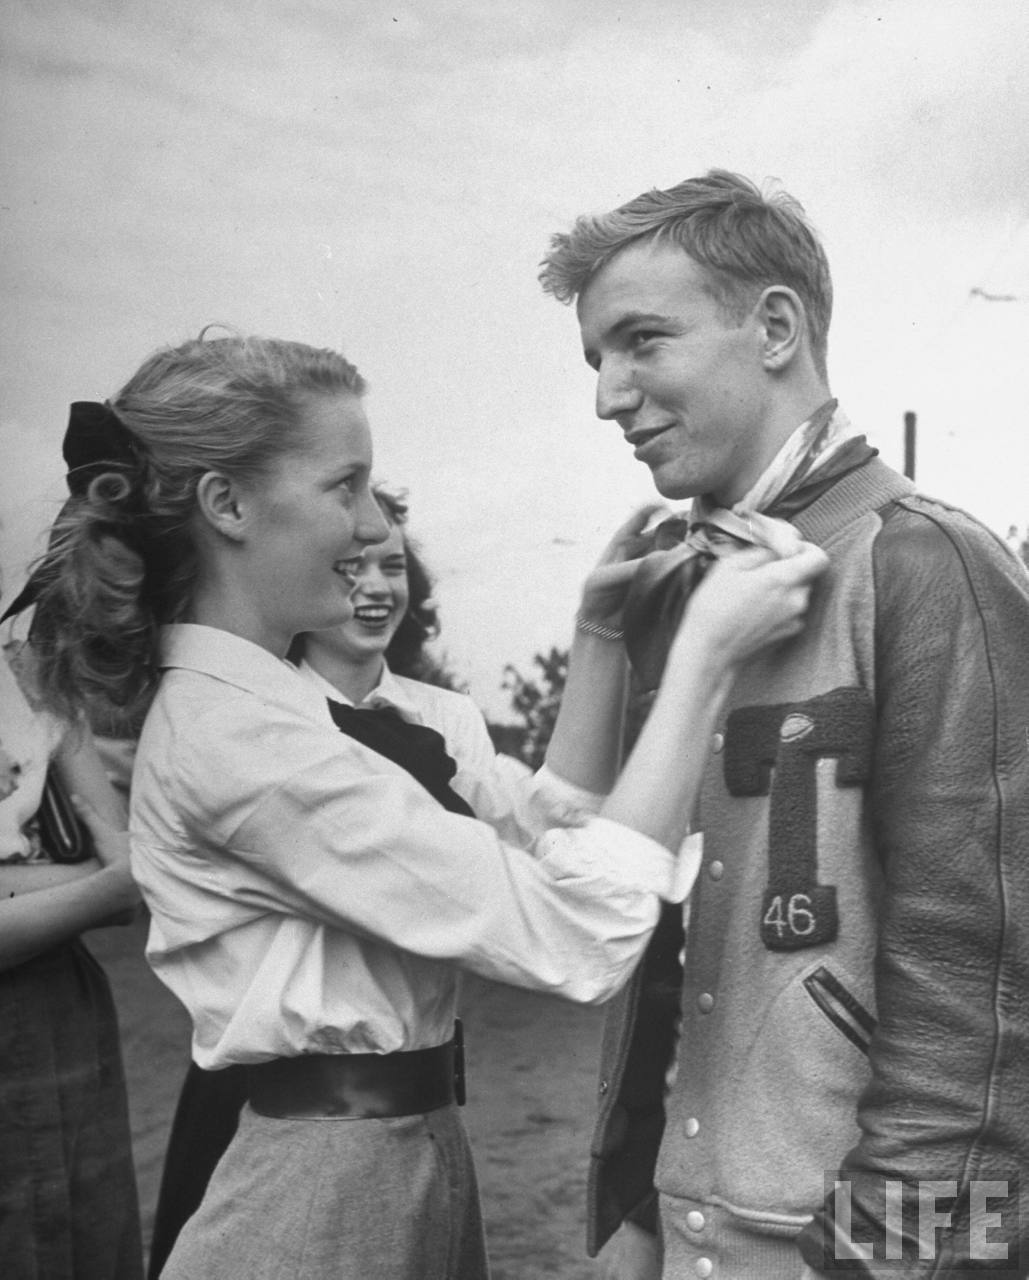 quiteanamericanboy:  bygoneamericana:  Teenage girl tying a scarf around the neck of her boyfriend as a fad. Atlanta, 1947. By Ed Clark  Look the way shes looking at him!